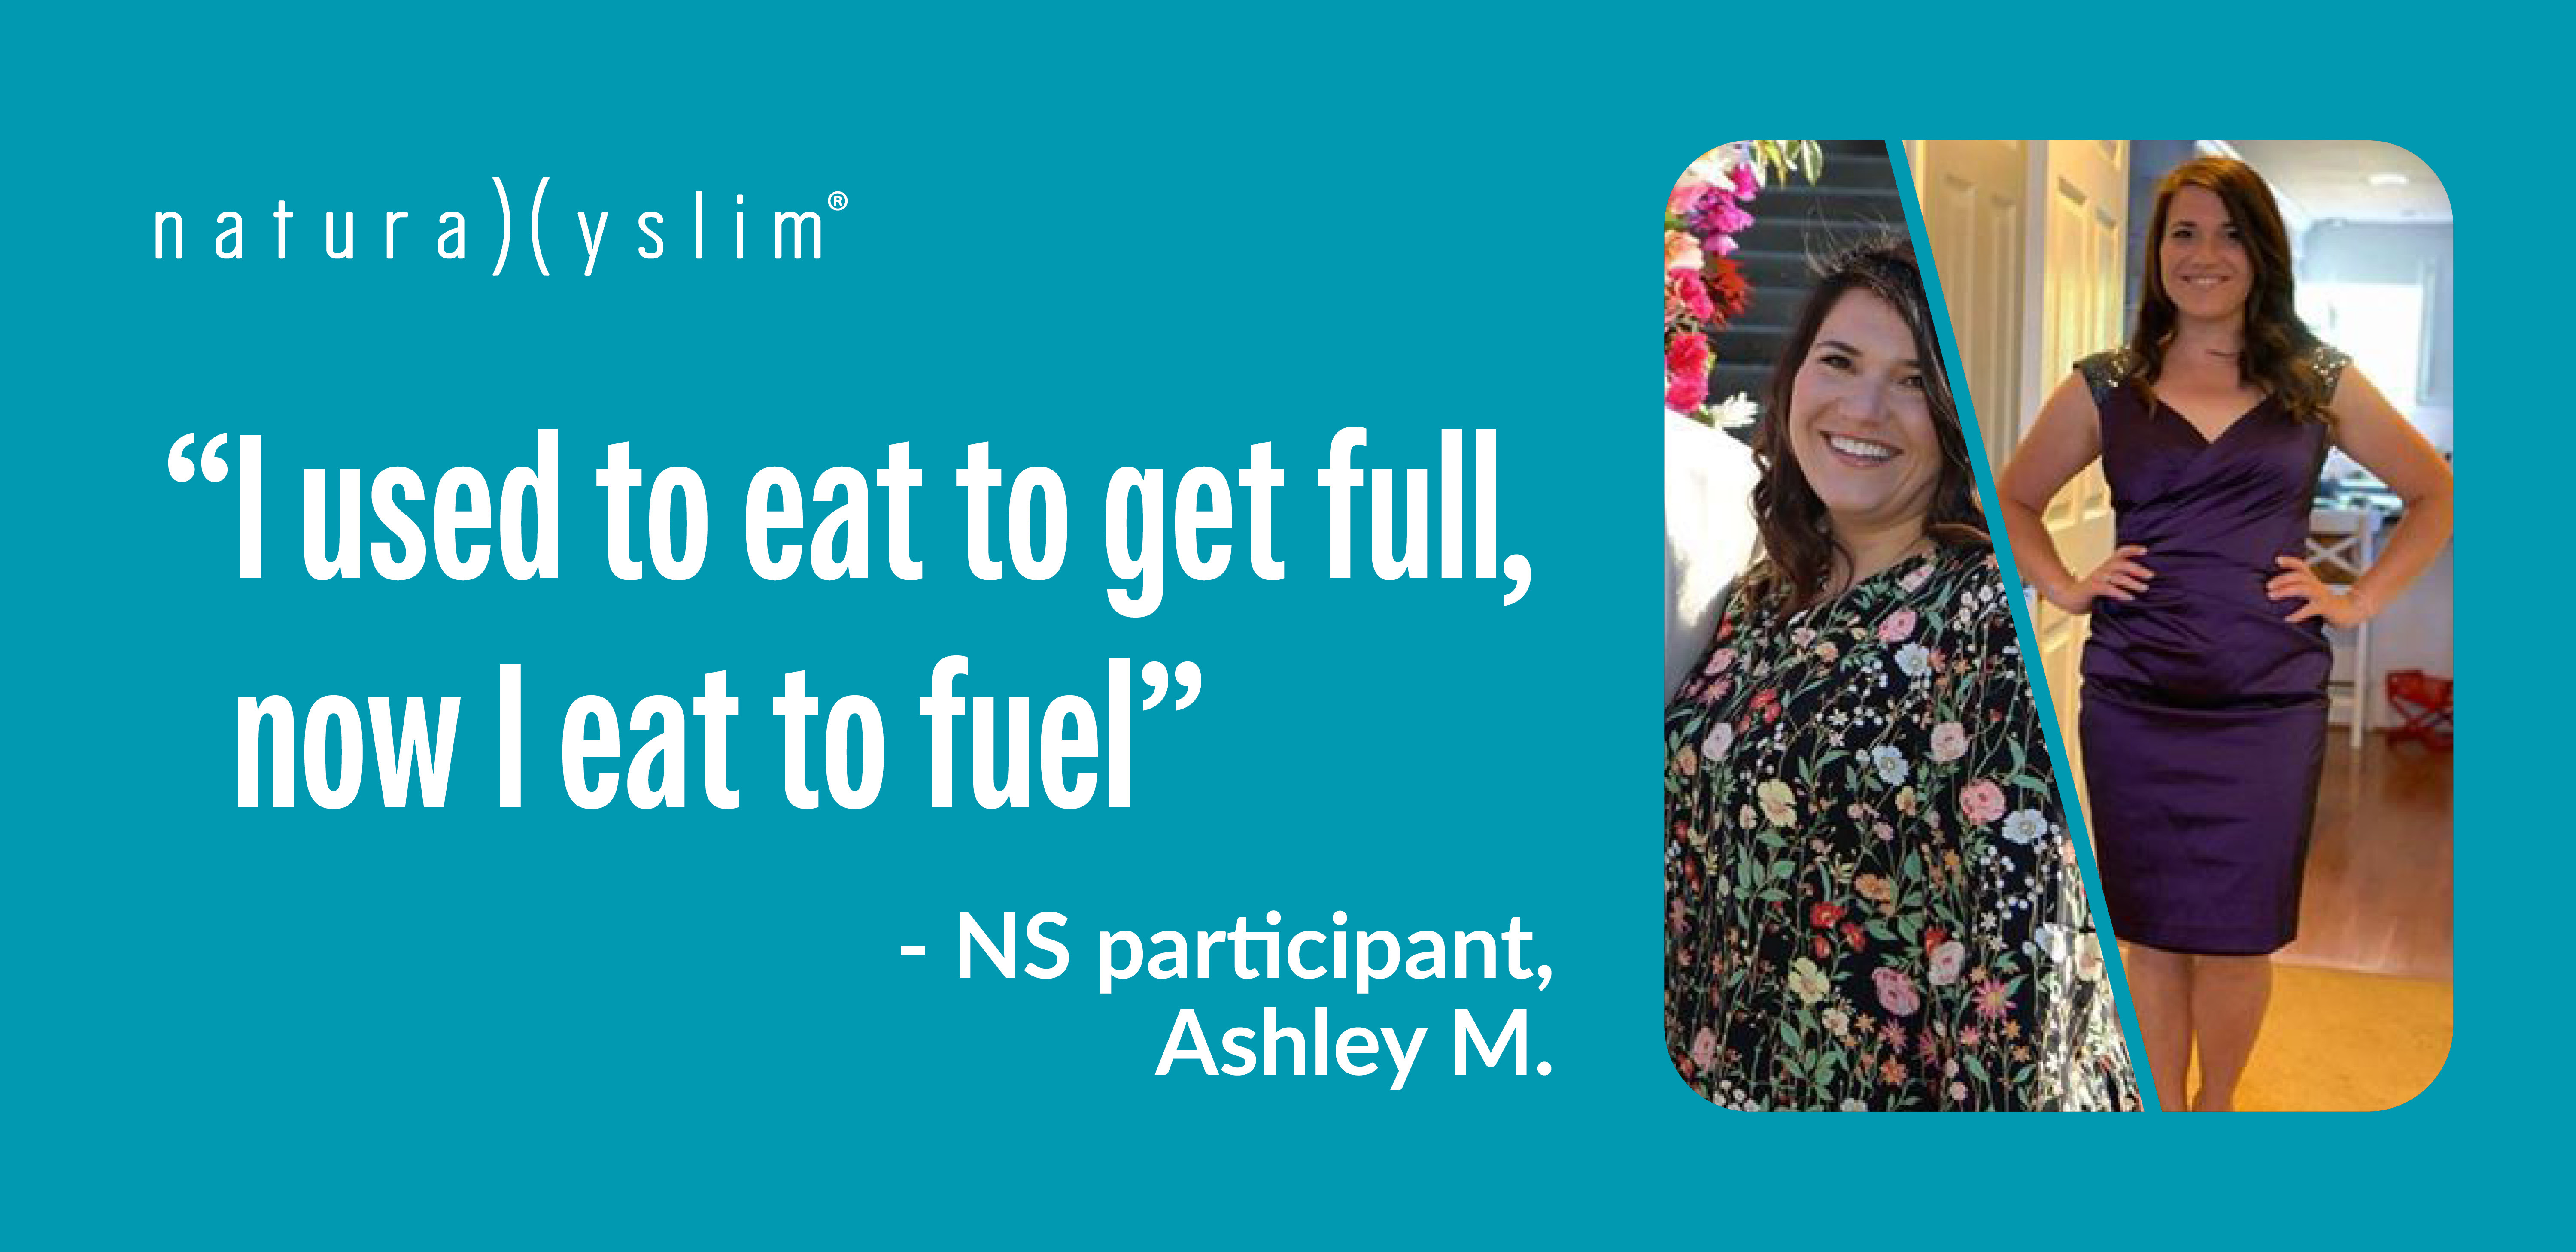 Eating to Fuel: Ashley's Naturally Slim Success Story